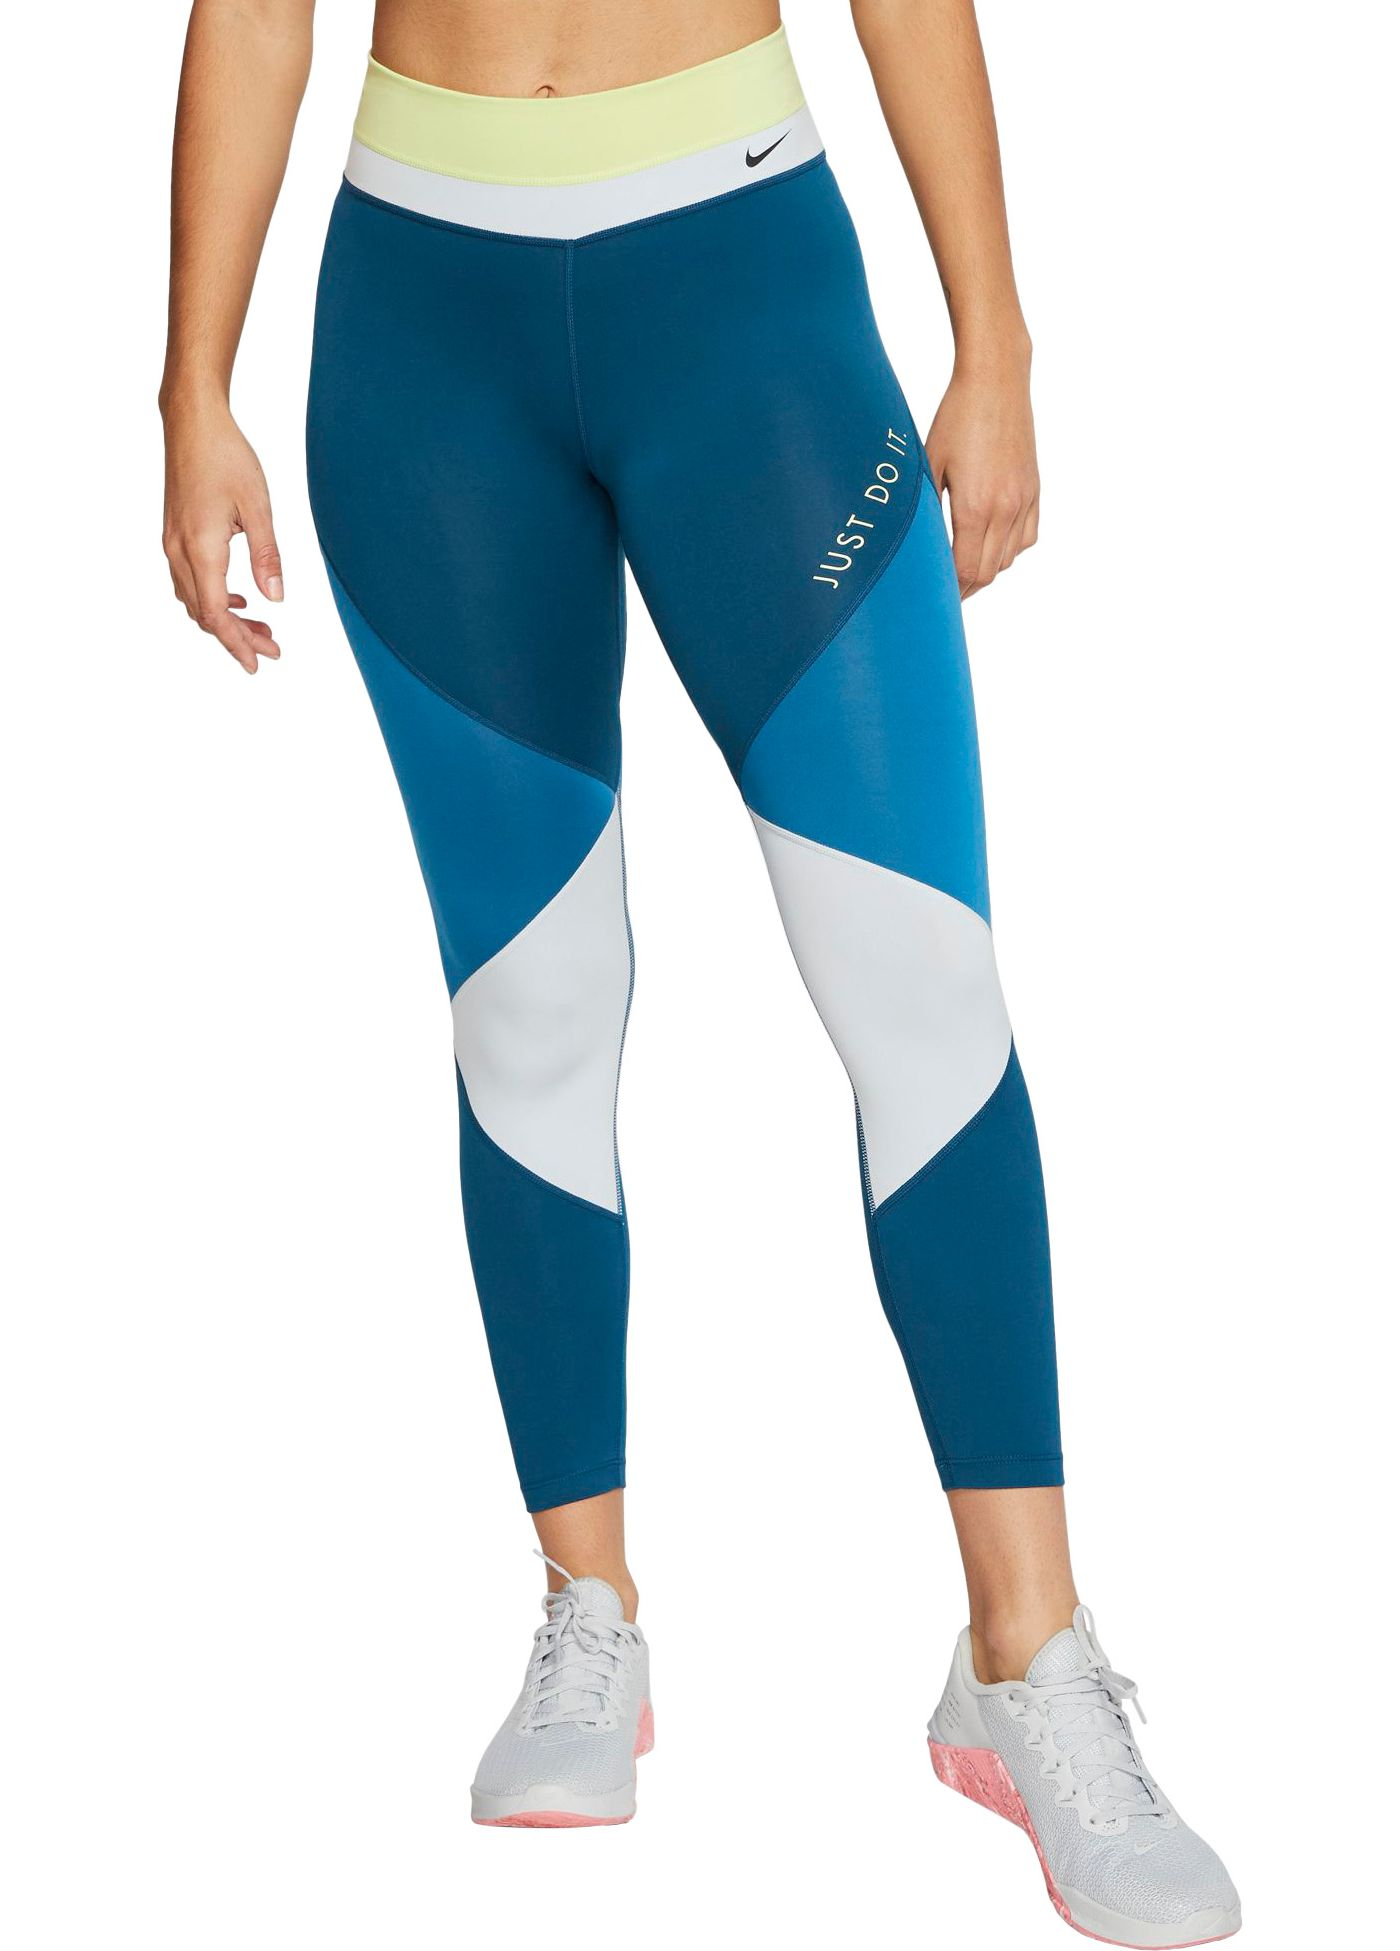 Nike One Women's Colorblock 7/8 Tights